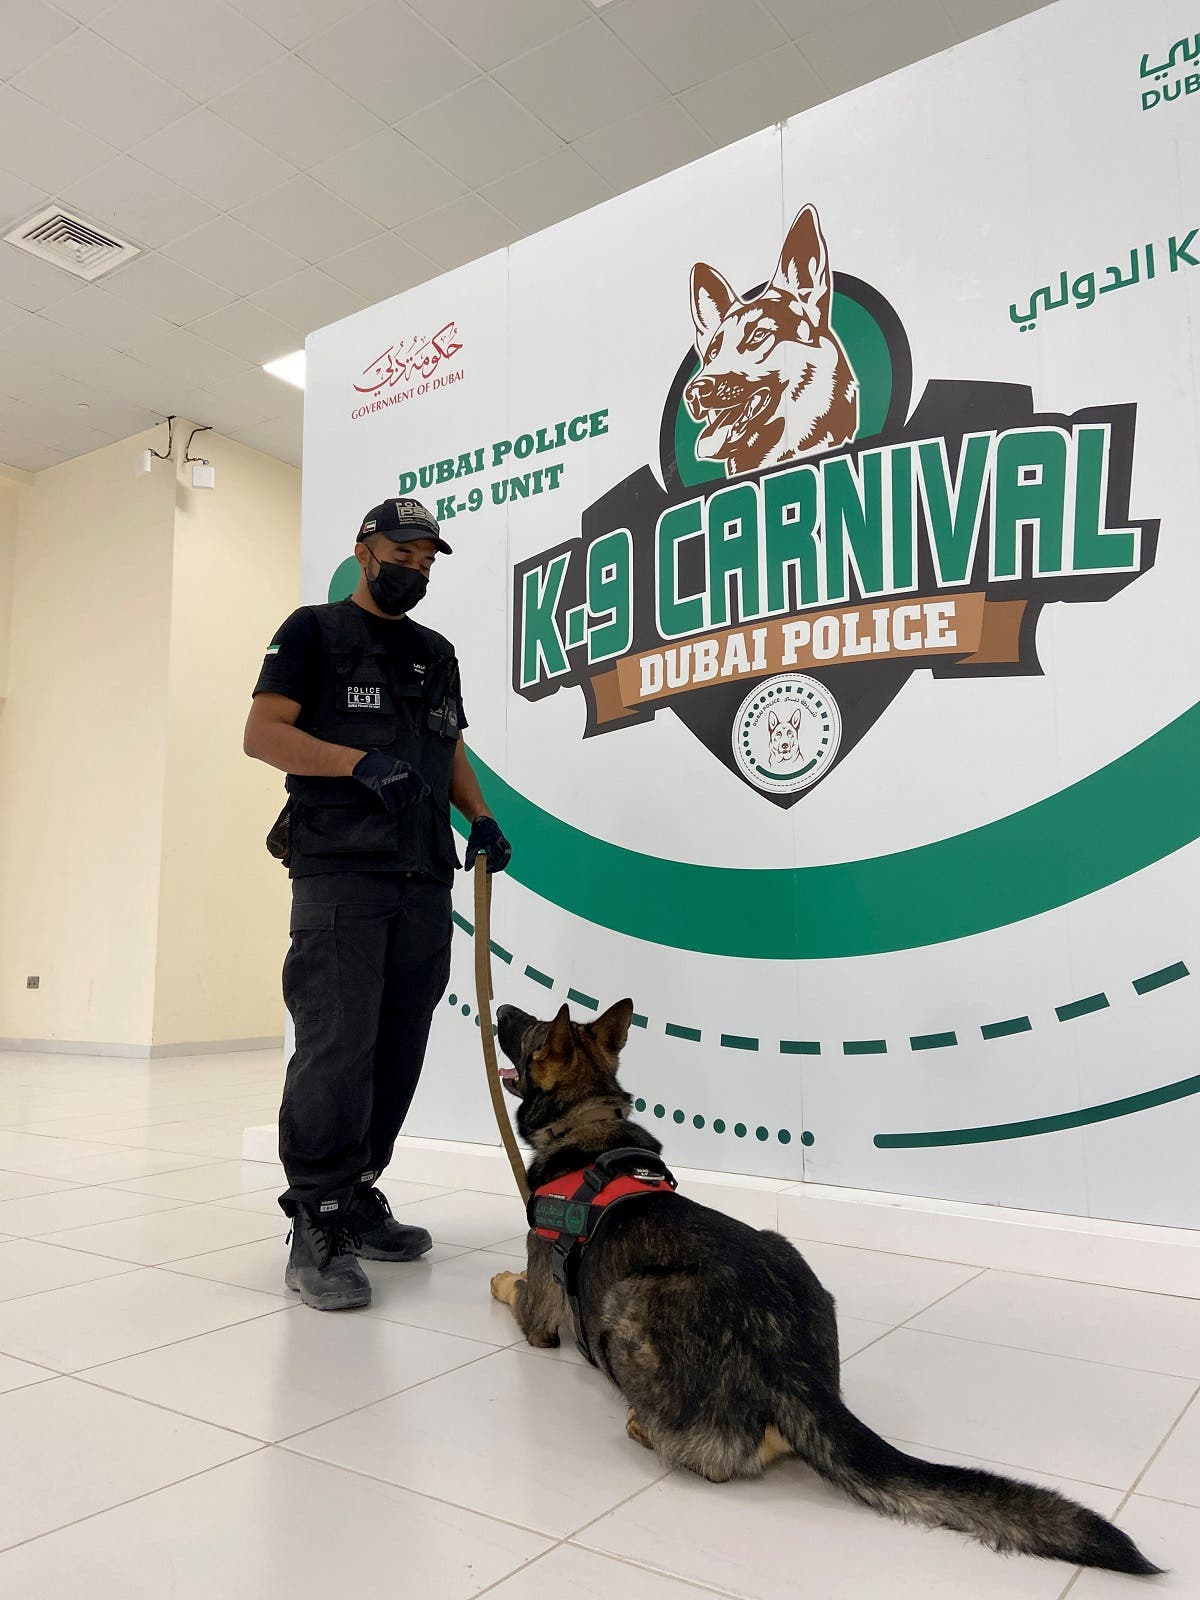 A dog that has been trained by Dubai Police K-9 unit to sniff out COVID-19 looks at his trainer in Dubai, United Arab Emirates, September 13, 2021. (Reuters/Abdel Hadi Ramahi)